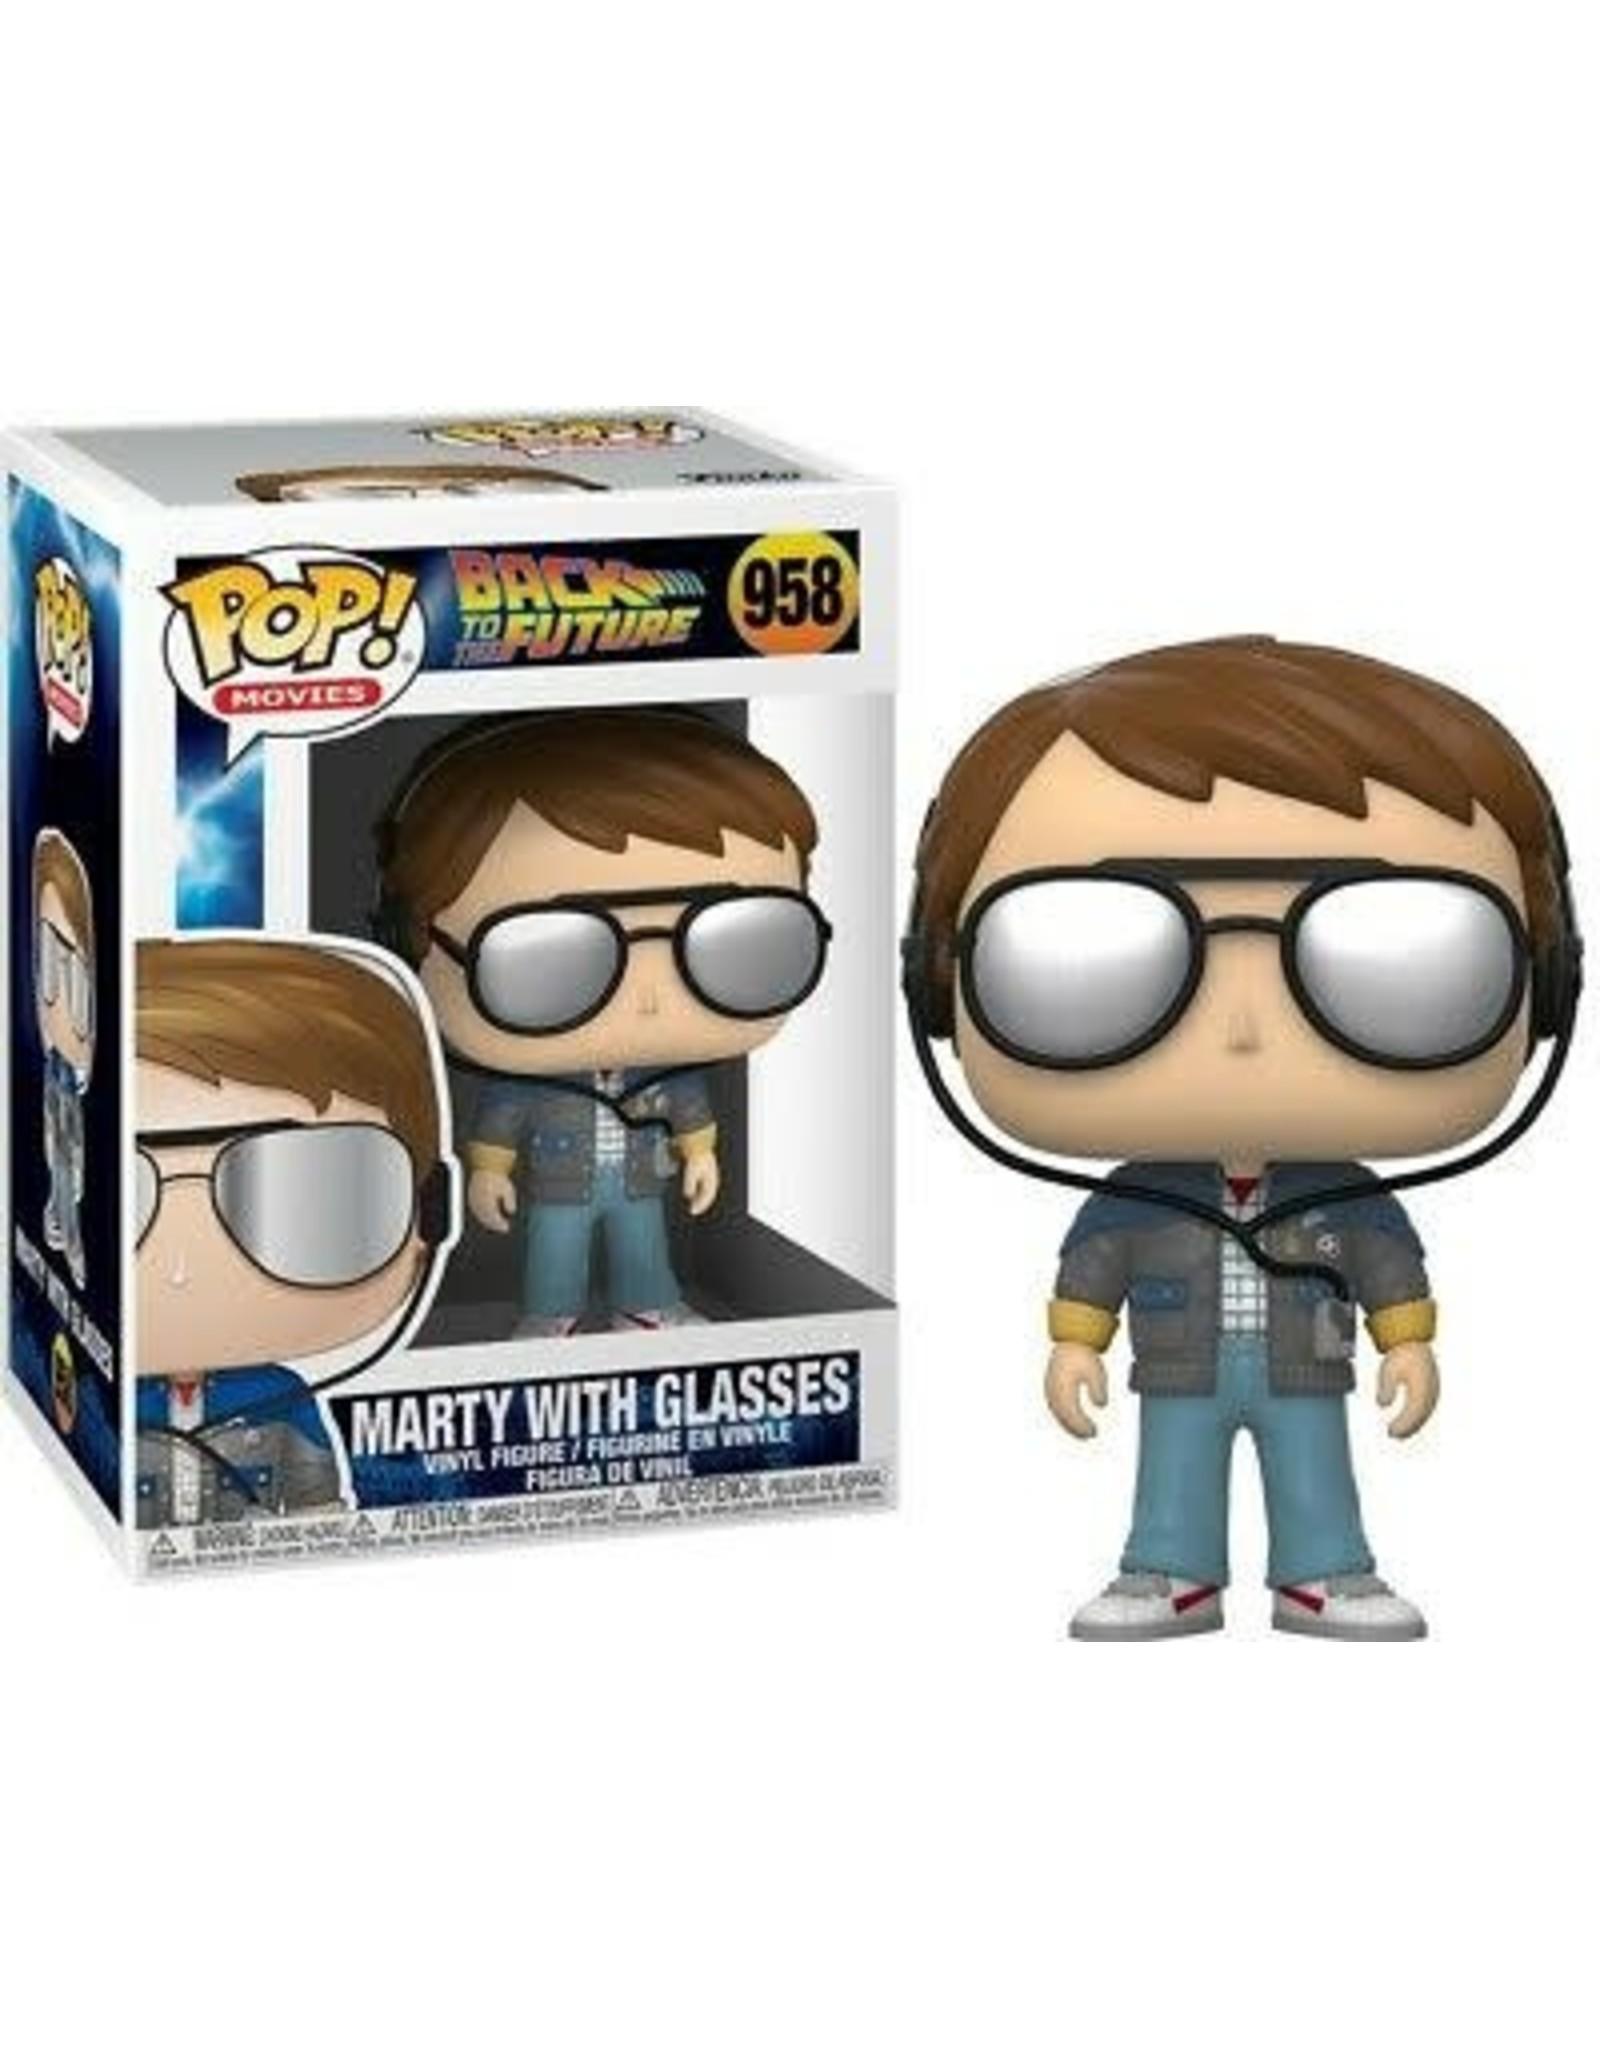 Funko BACK TO THE FUTURE POP! N° 958 - Marty with Glasses